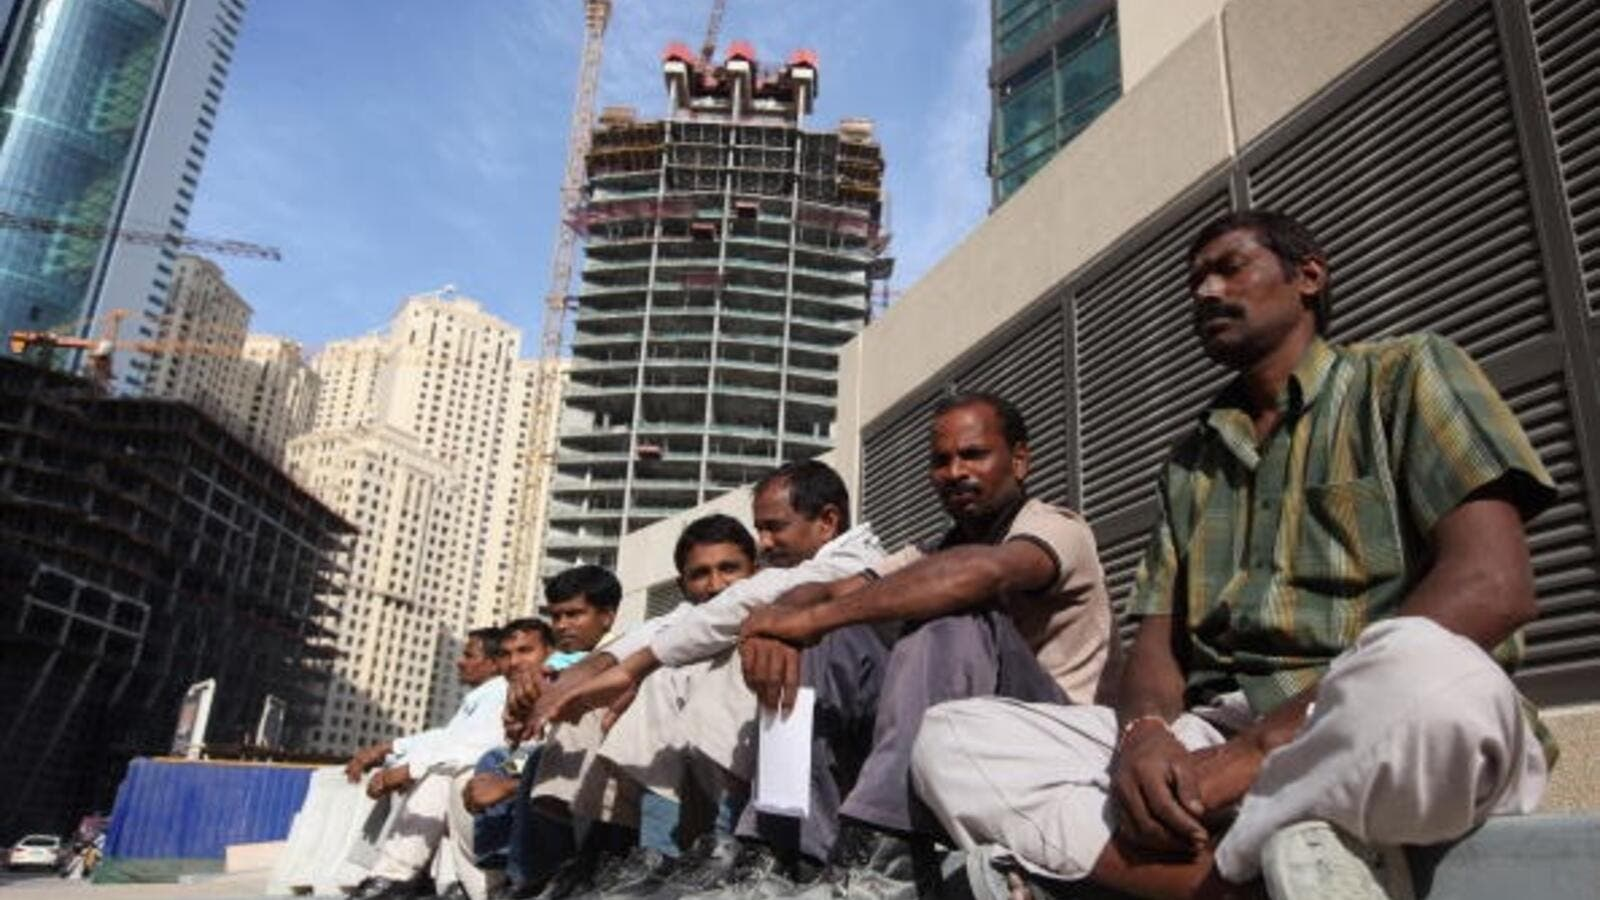 Last year, thousands of migrant workers in Saudi Arabia were stuck without a job or pay. The issue was particularly felt in construction companies such as Saudi Oger and Saudi Binladin. (AFP/ File)